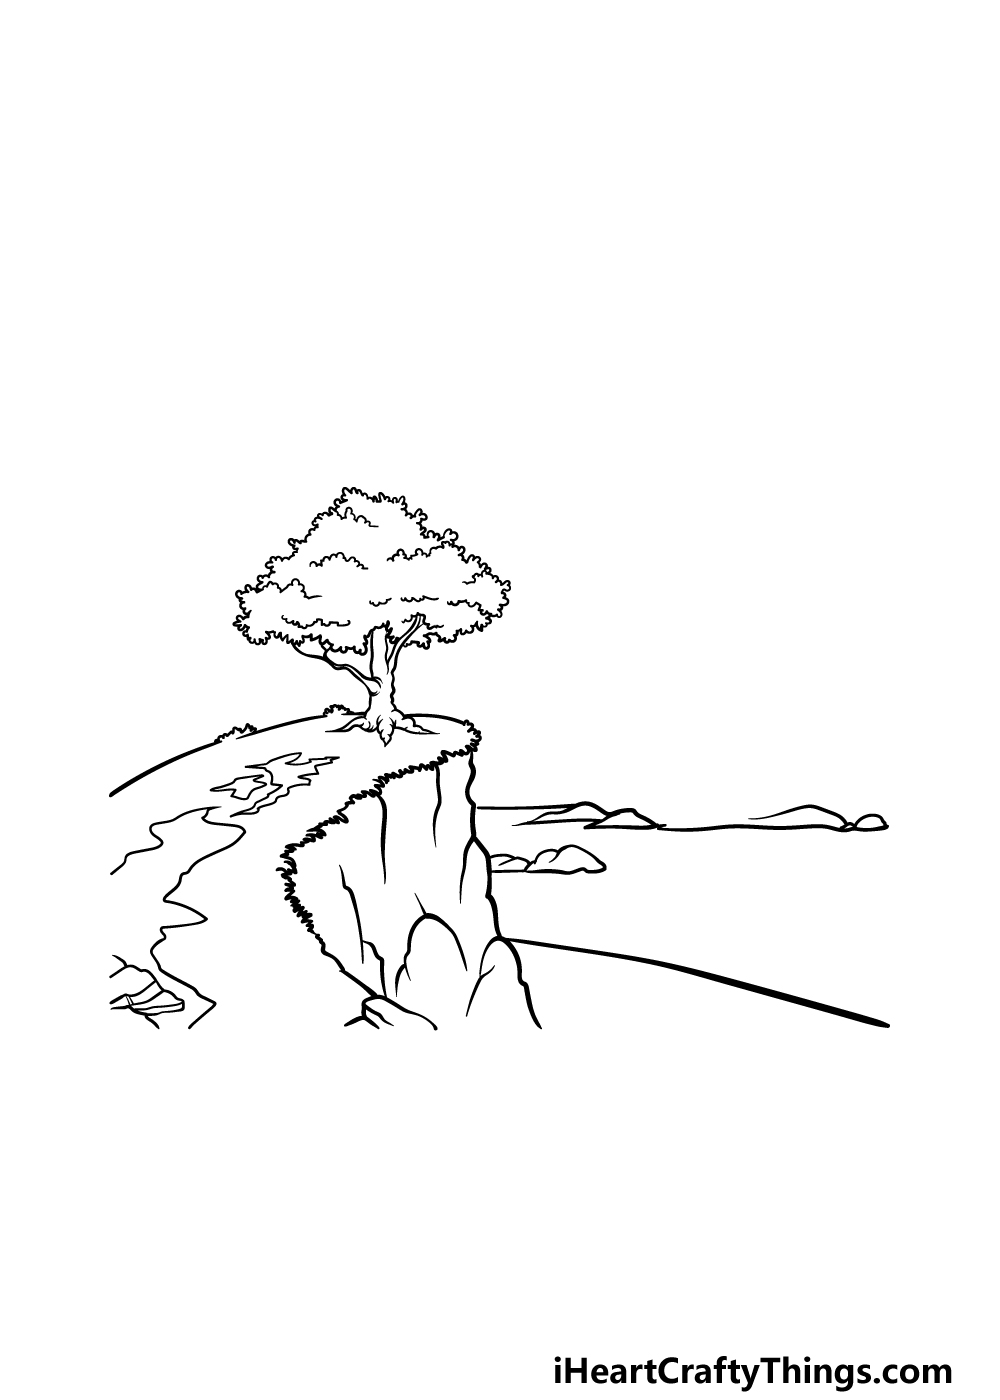 drawing a cliff step 6